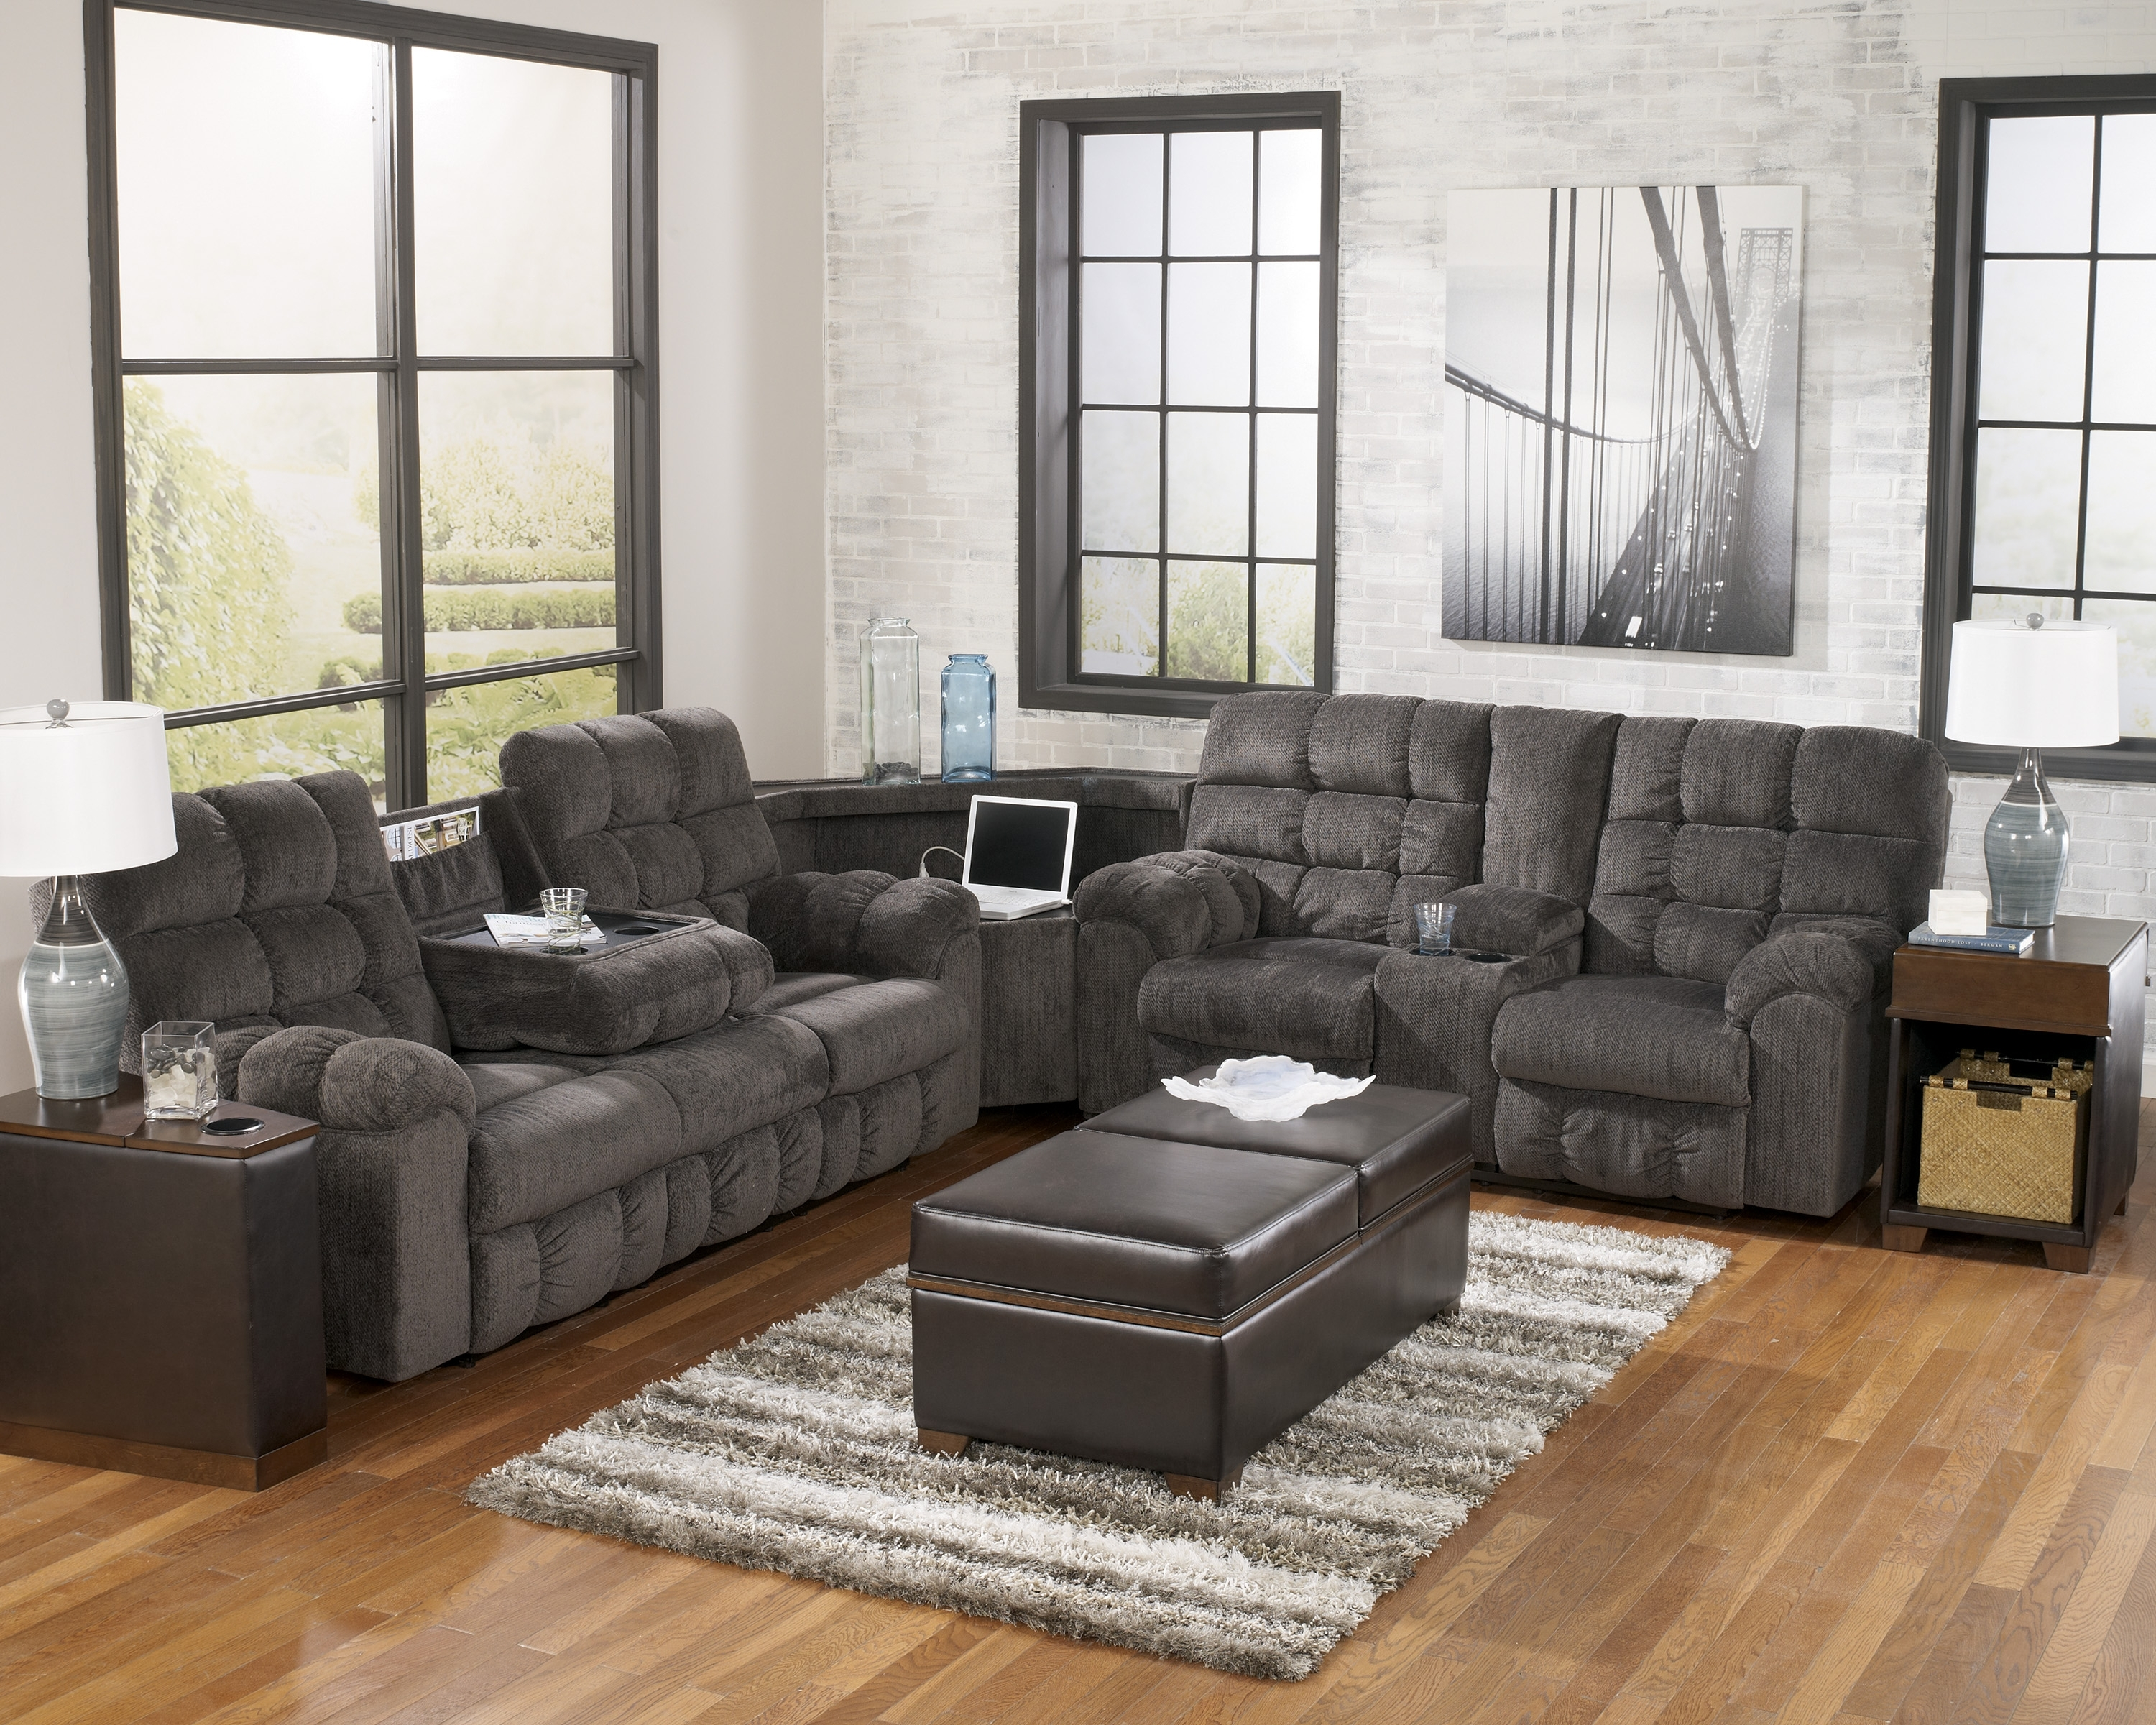 Amazing Ashley Sofas And Sectionals 67 With Additional Used Pertaining To Sears Sectional Sofas (Image 1 of 10)